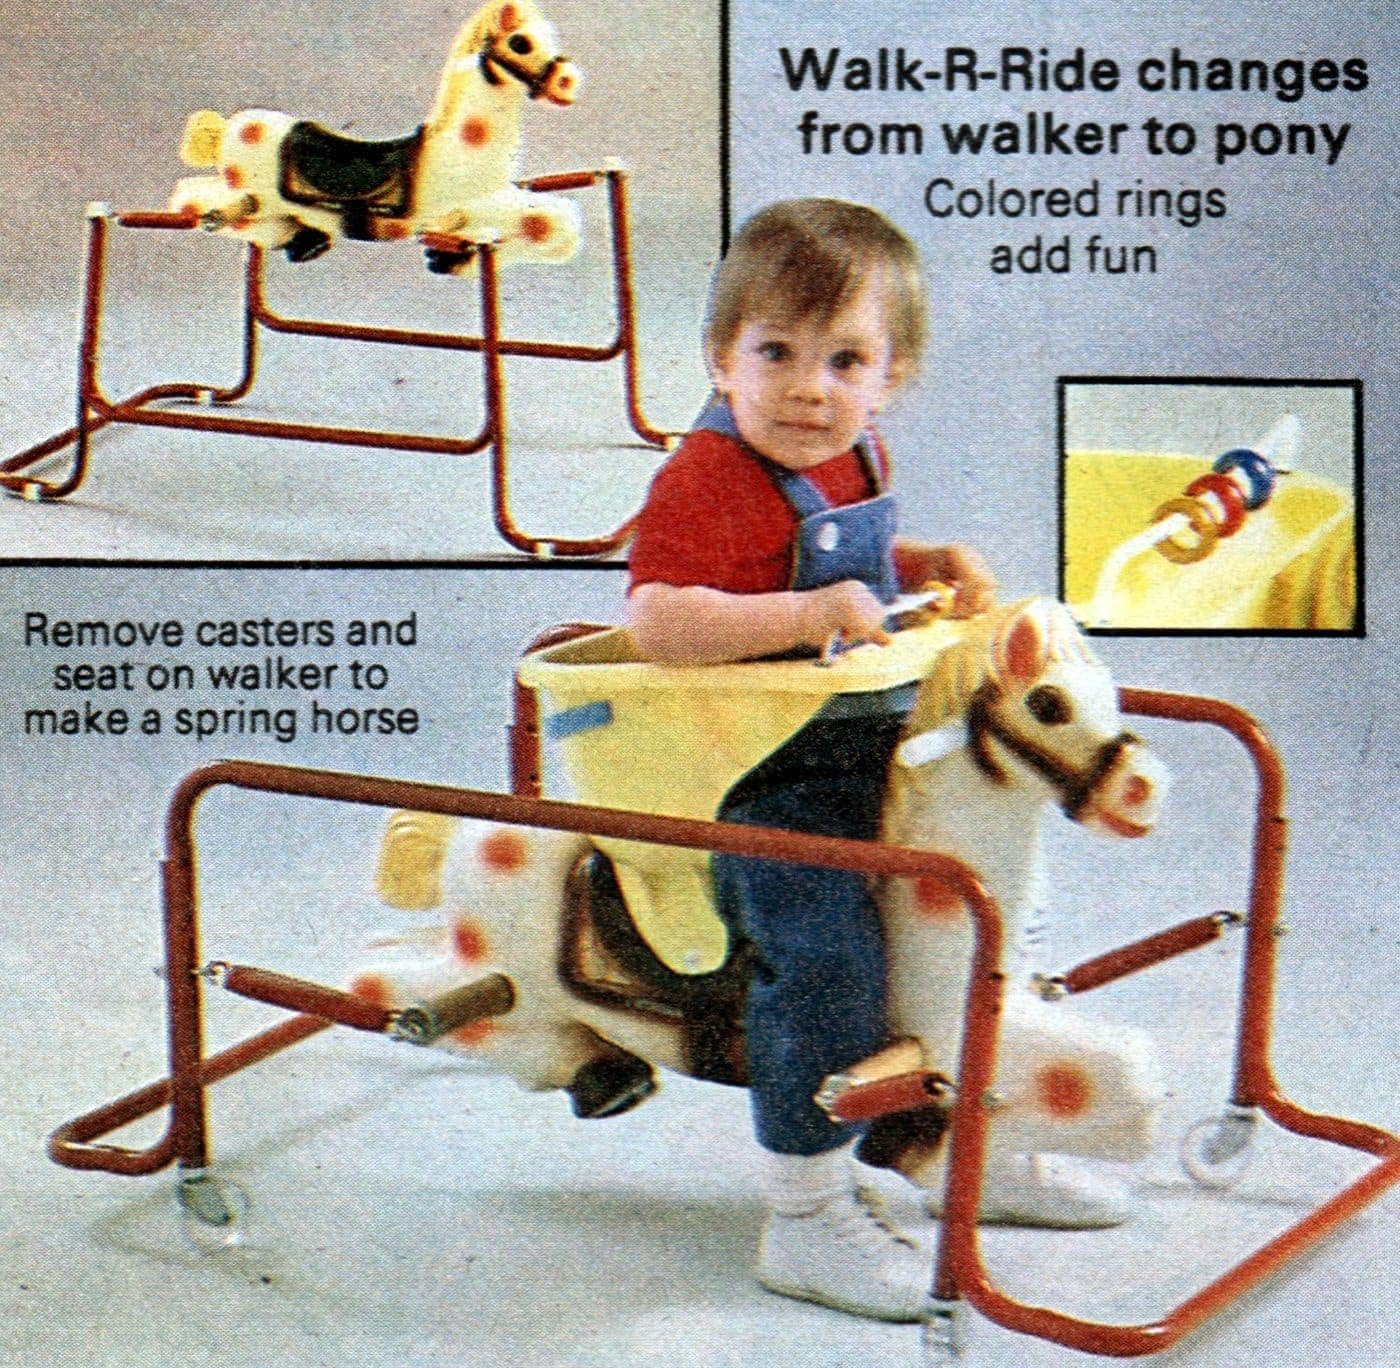 intage ride-on spring horse toys from the 1980s (1)